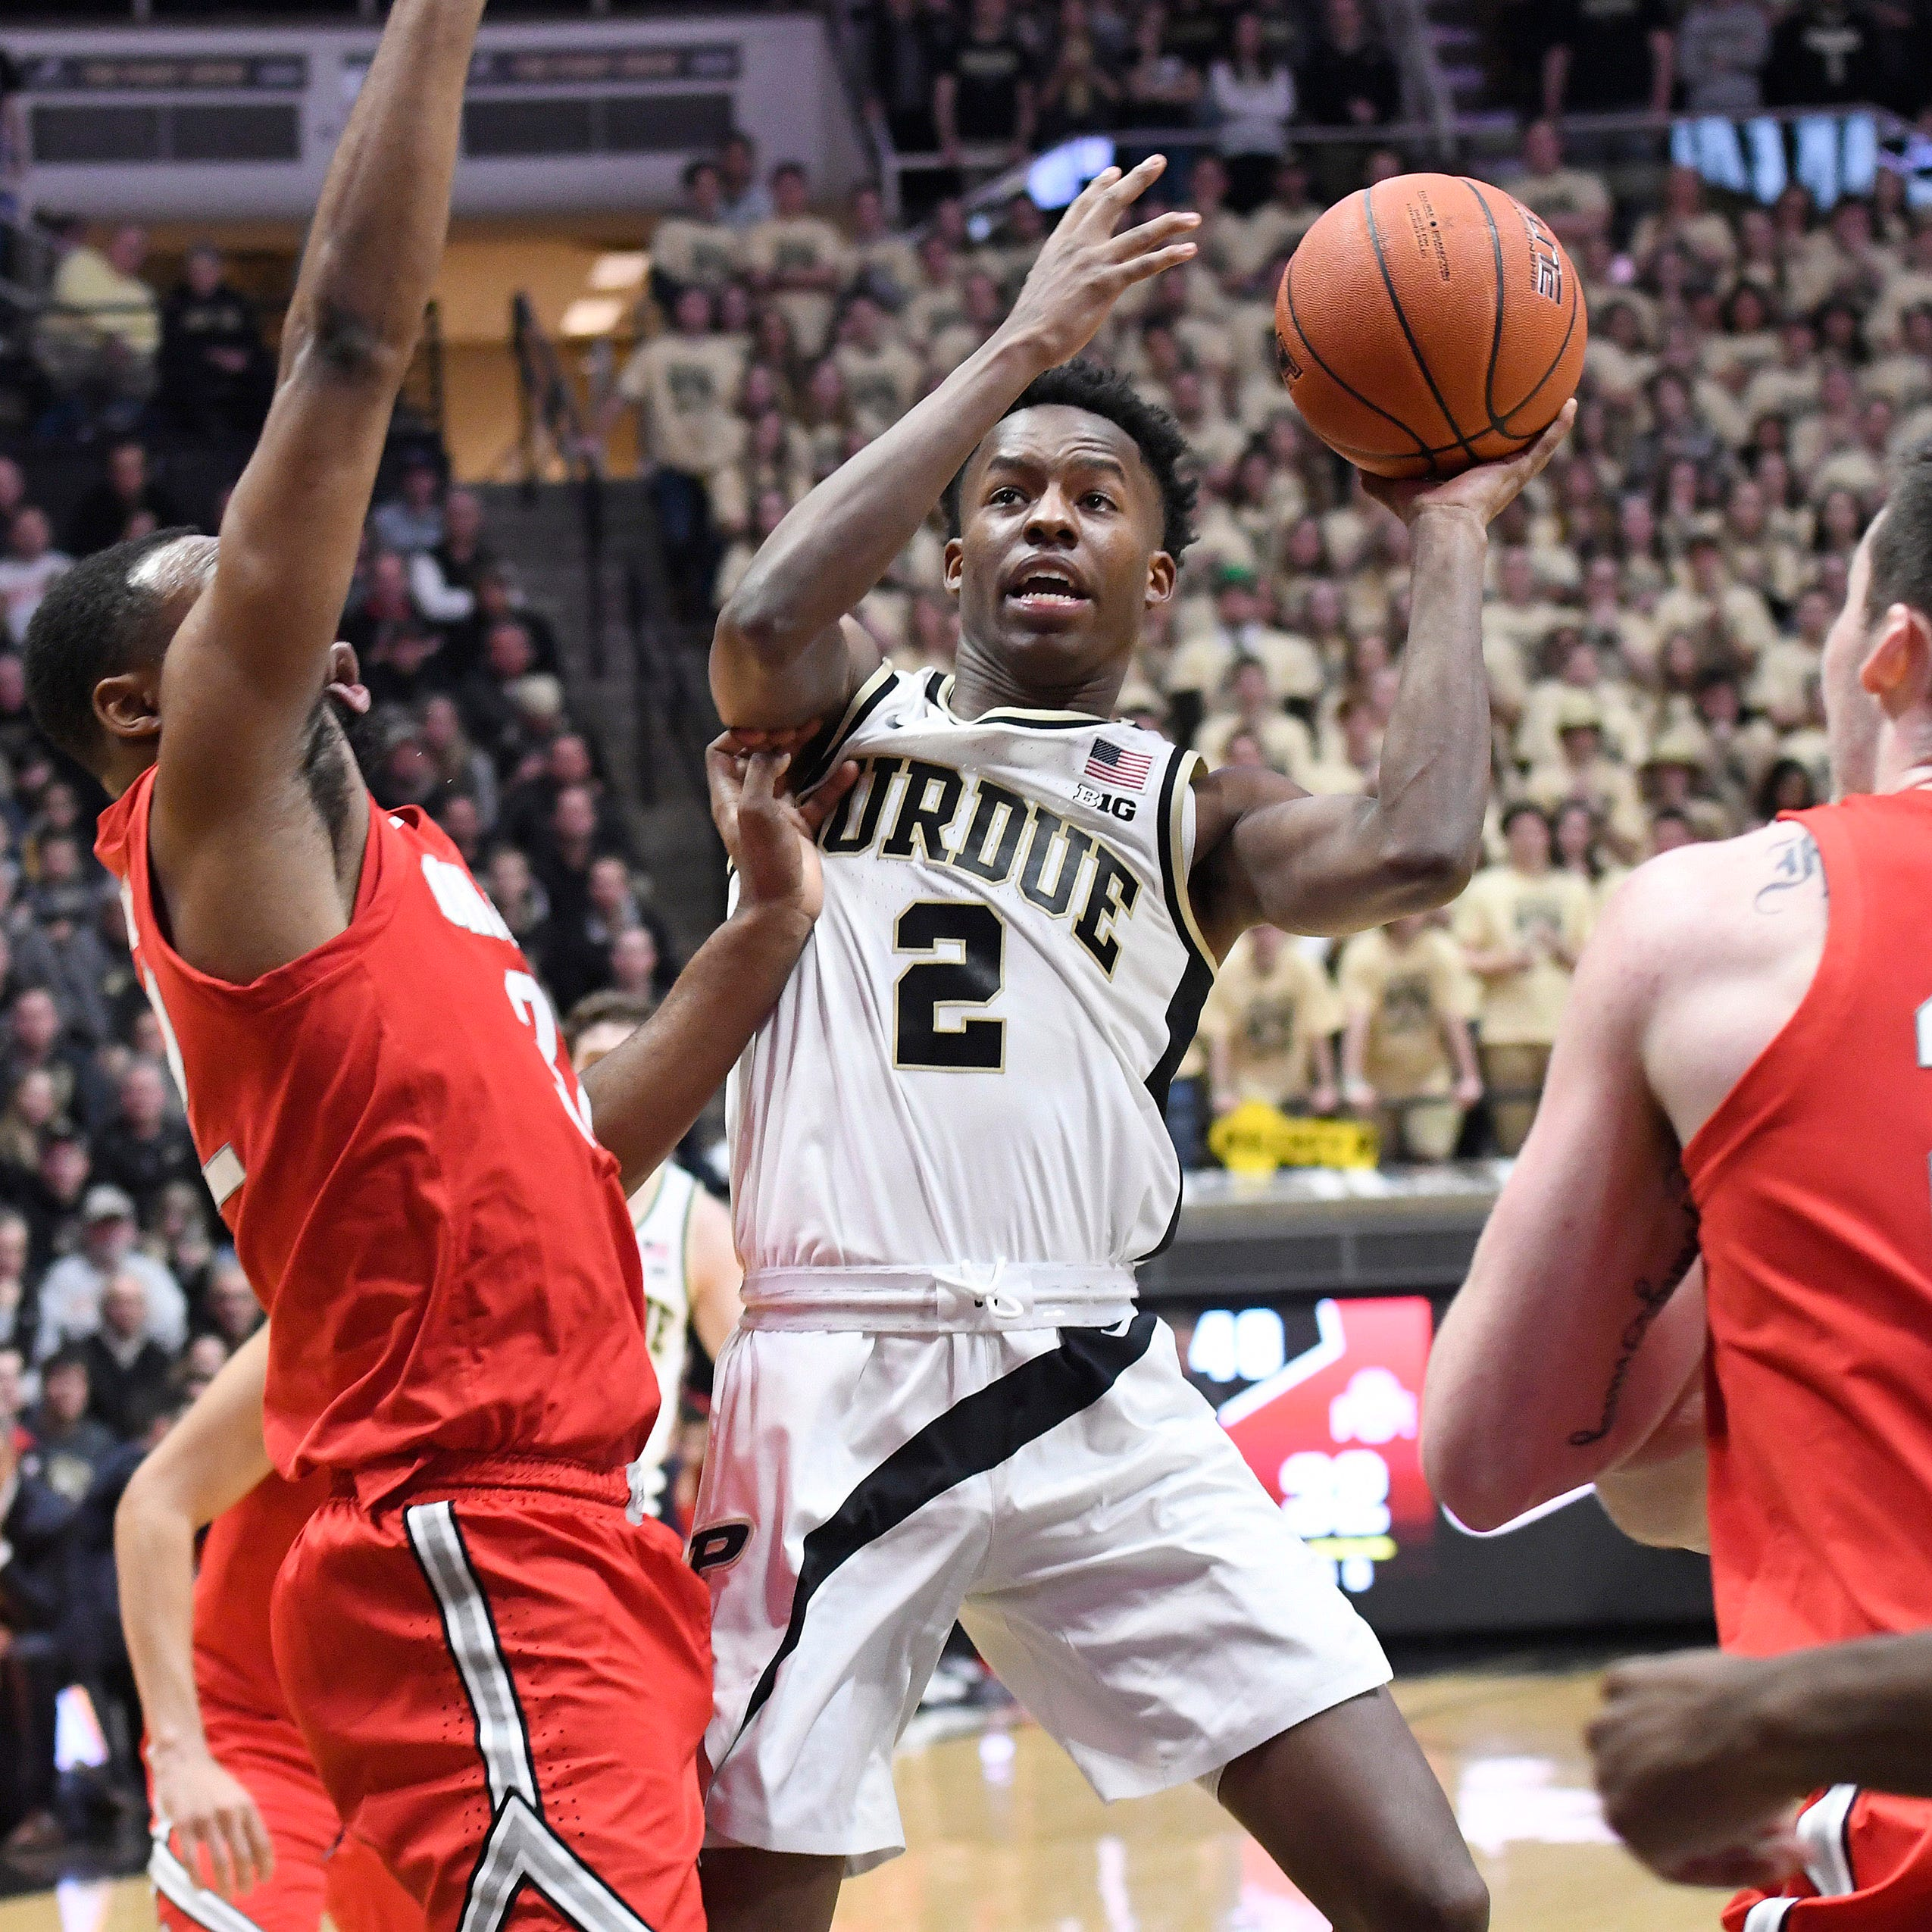 Purdue basketball freshmen eager for NCAA tournament debuts vs. Old Dominion